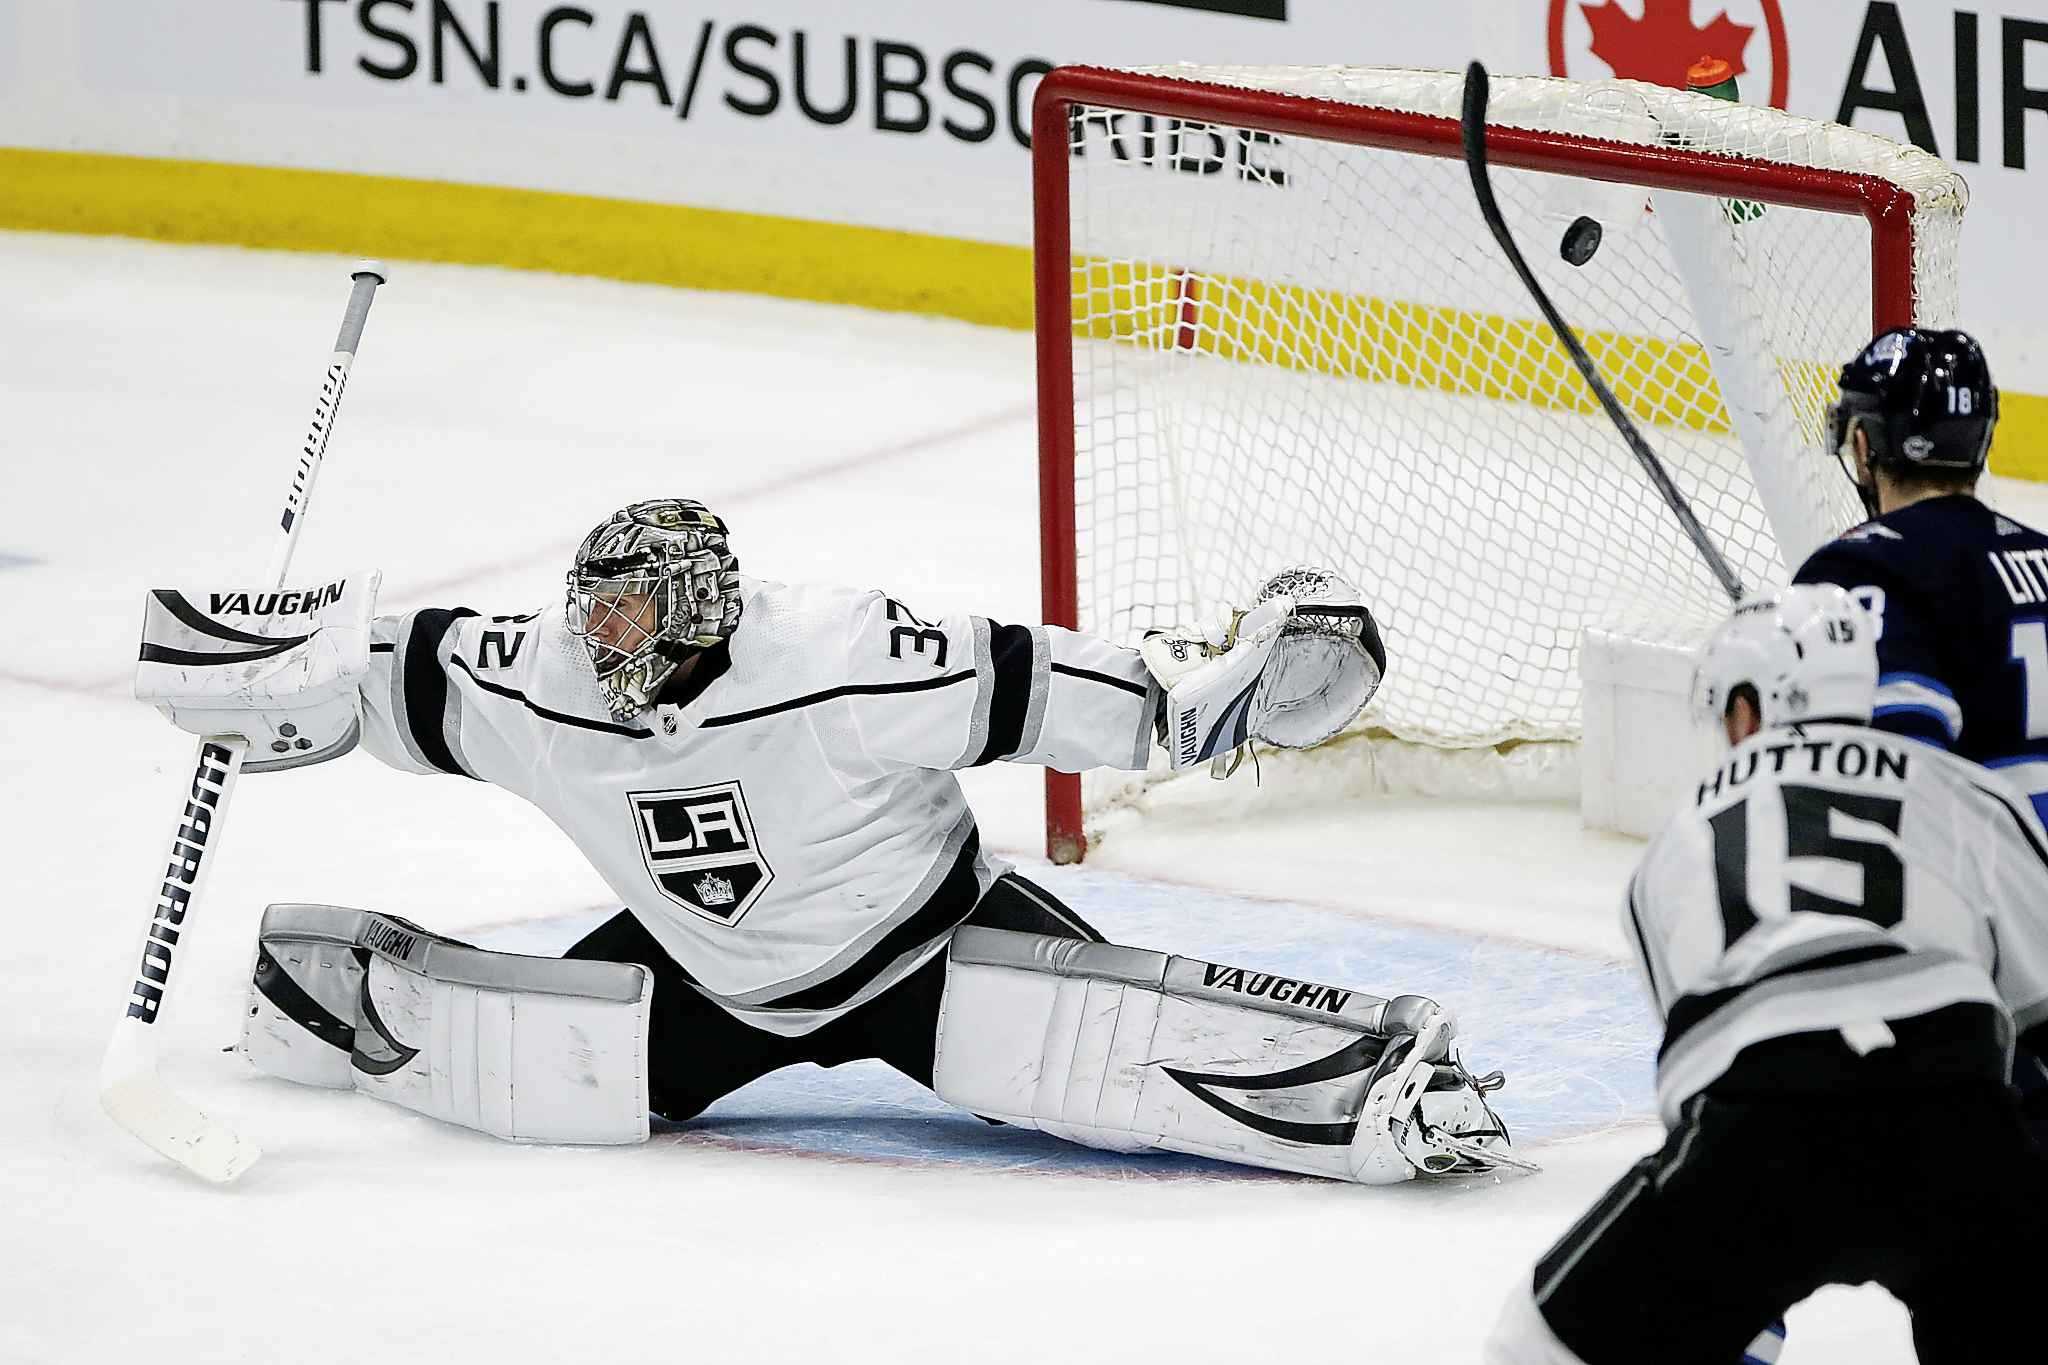 Los Angeles Kings goaltender Jonathan Quick can't stop the shot from Winnipeg Jets' Kyle Connor  during first period Tuesday.